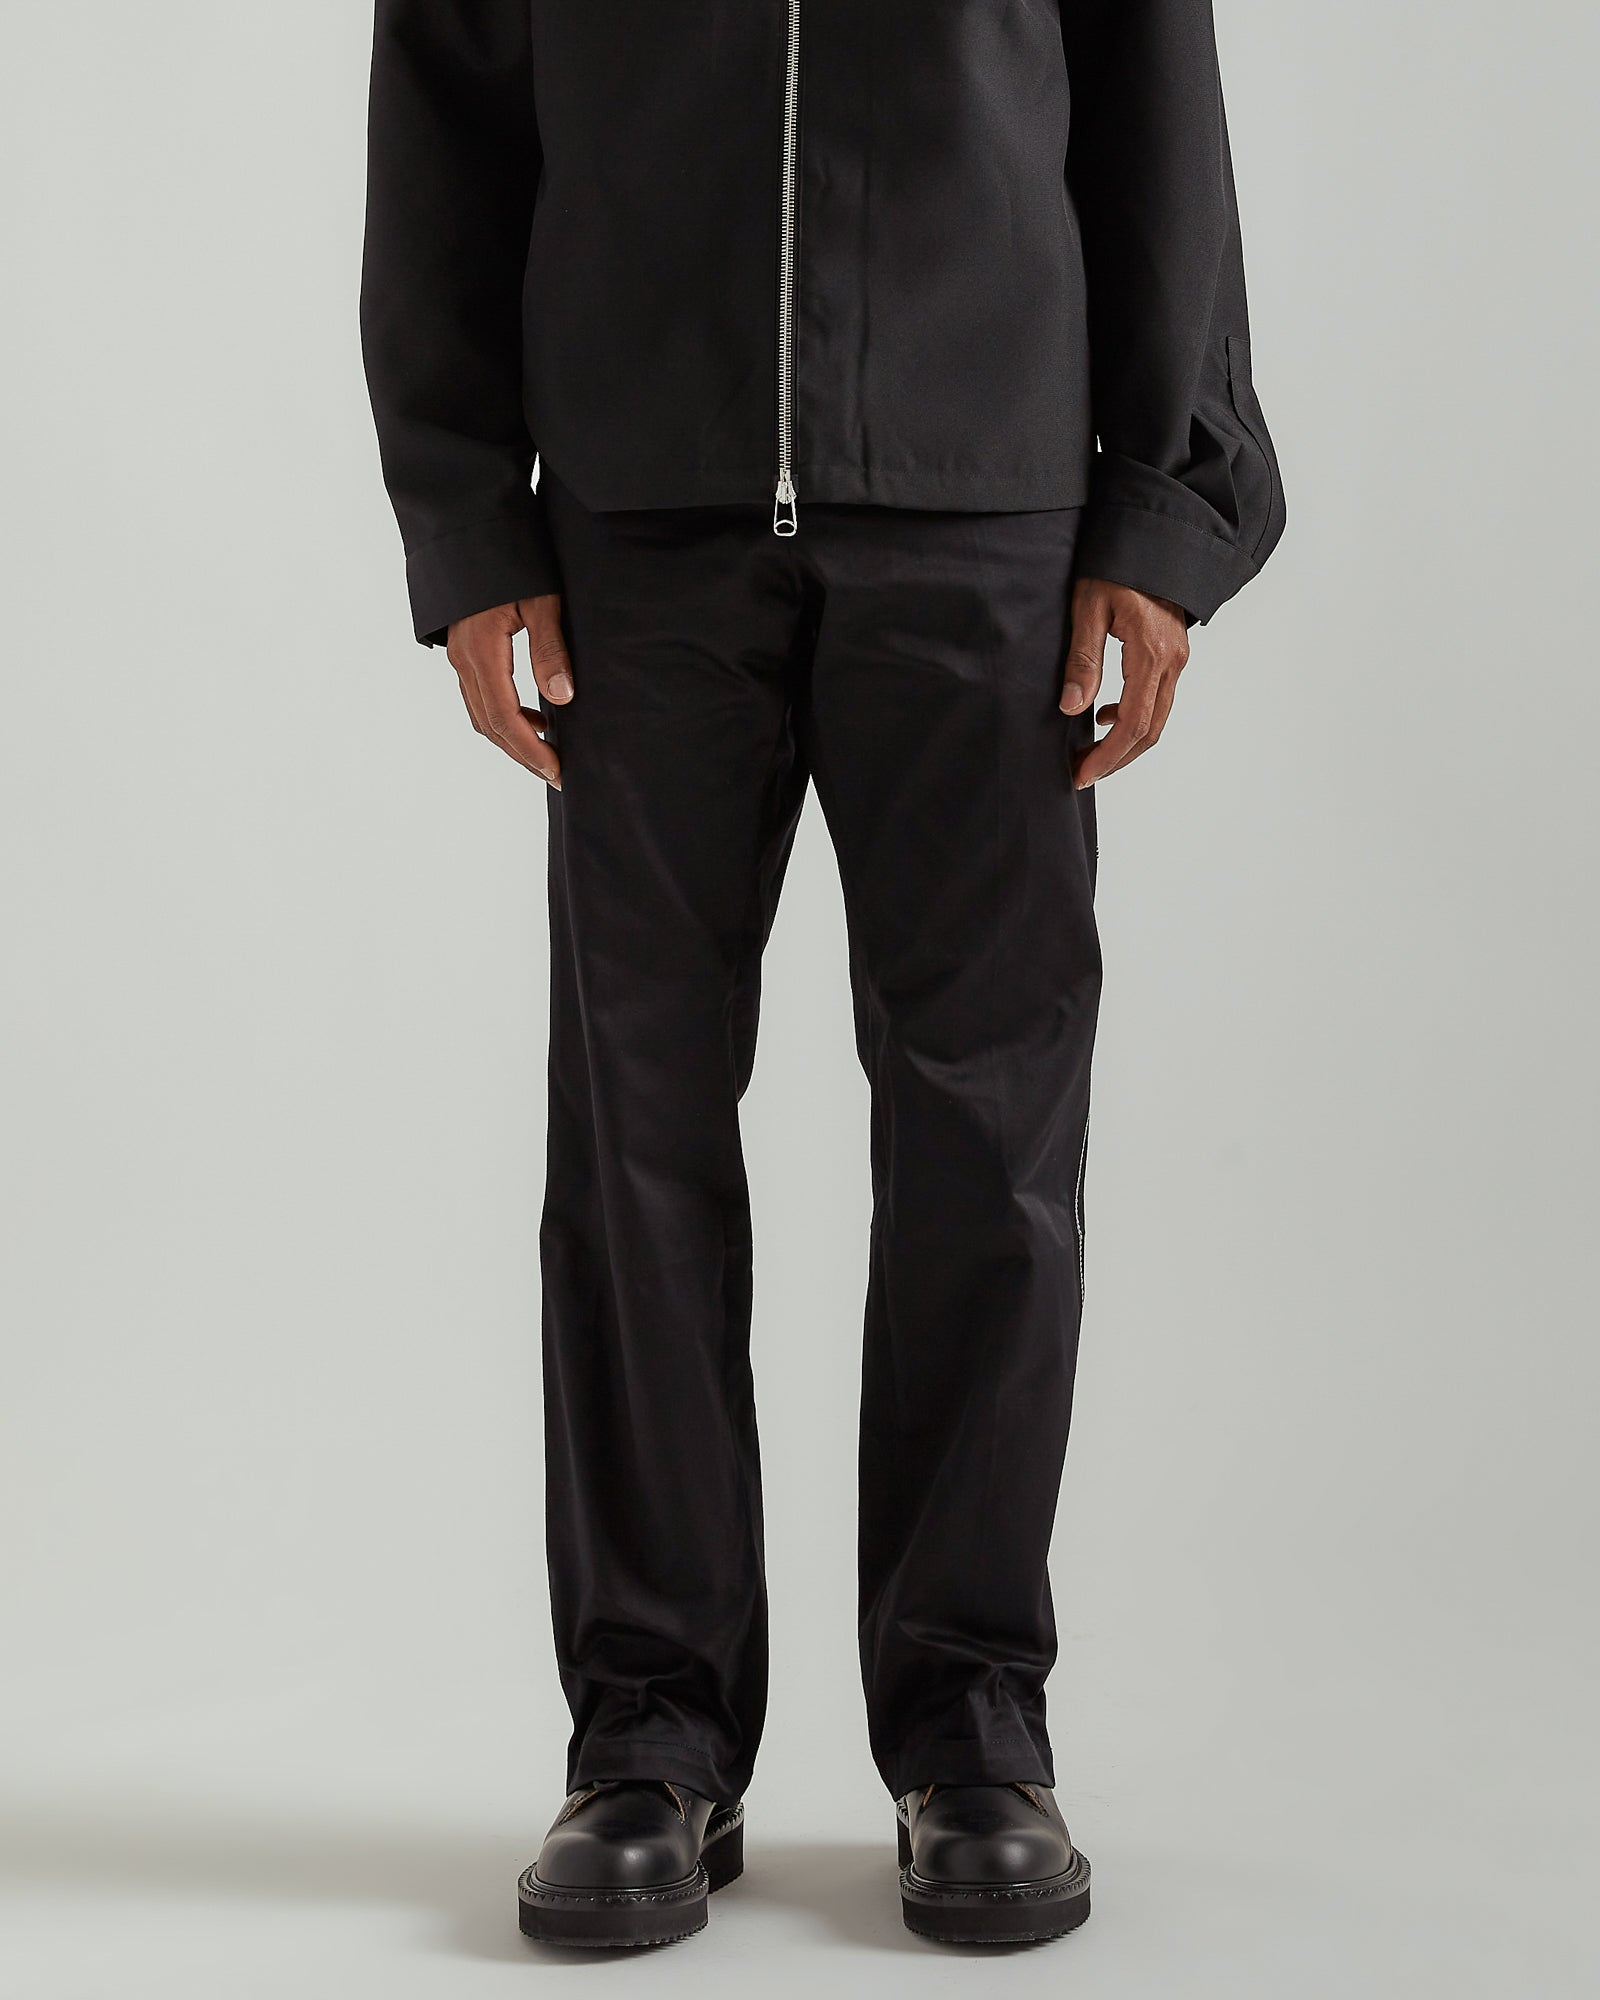 Construct Pant in Black